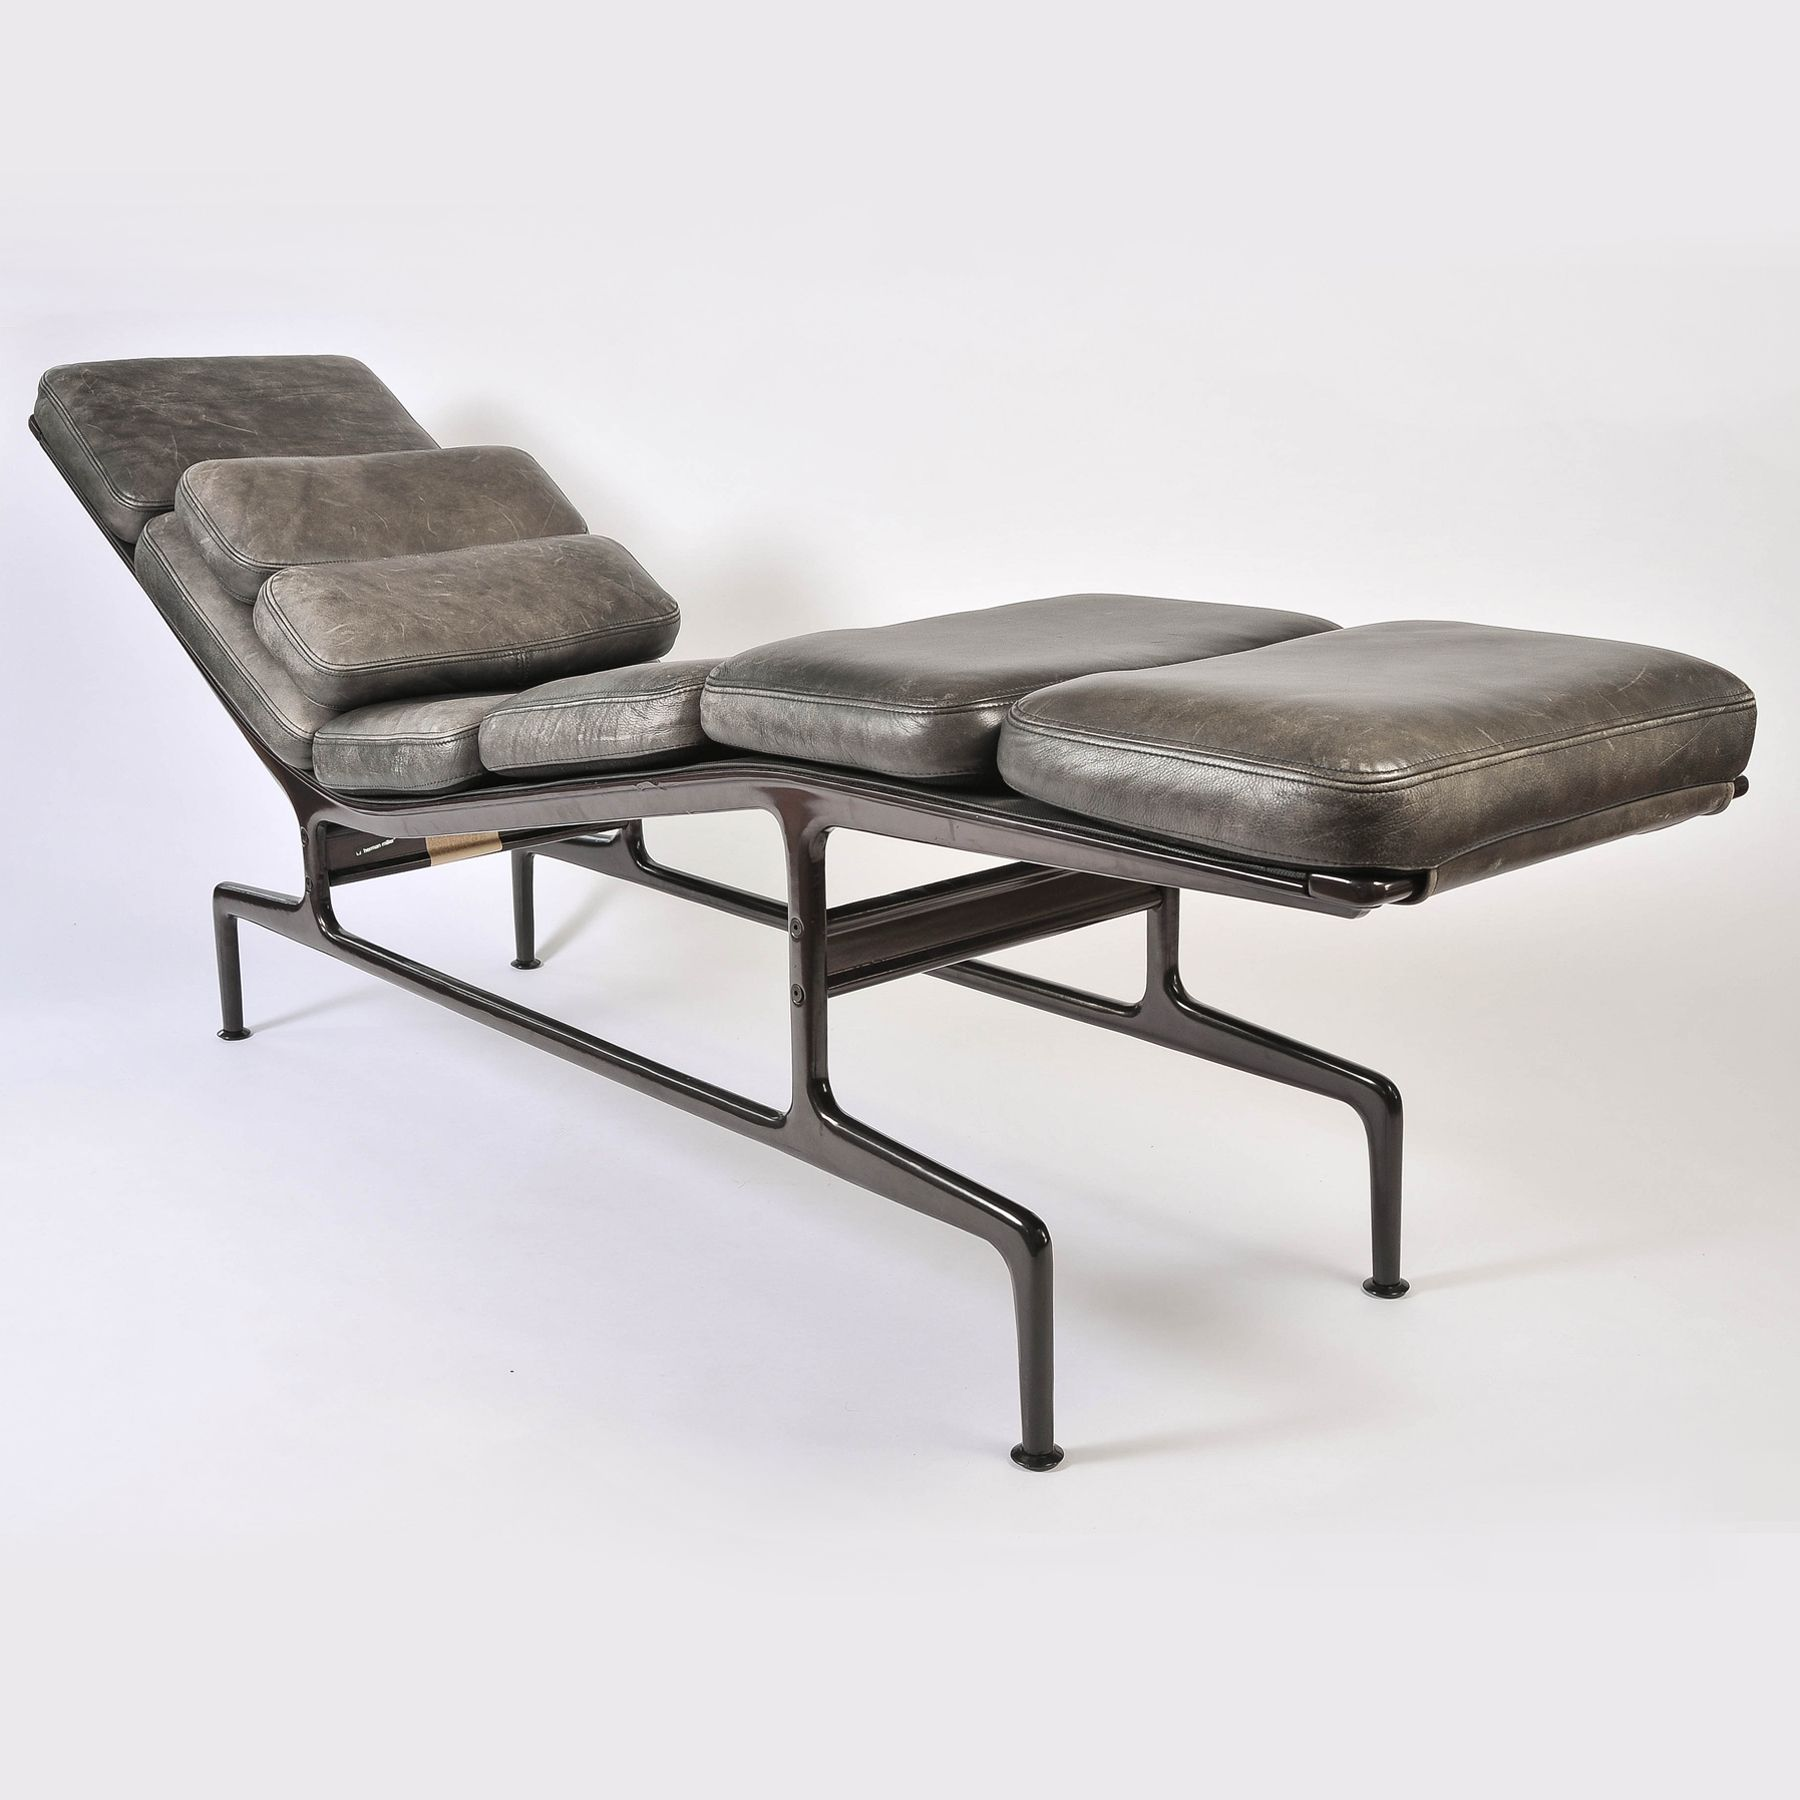 Mobly Sofa Chaise Charles Eames Chaise Longue Main Antiques Charles Eames